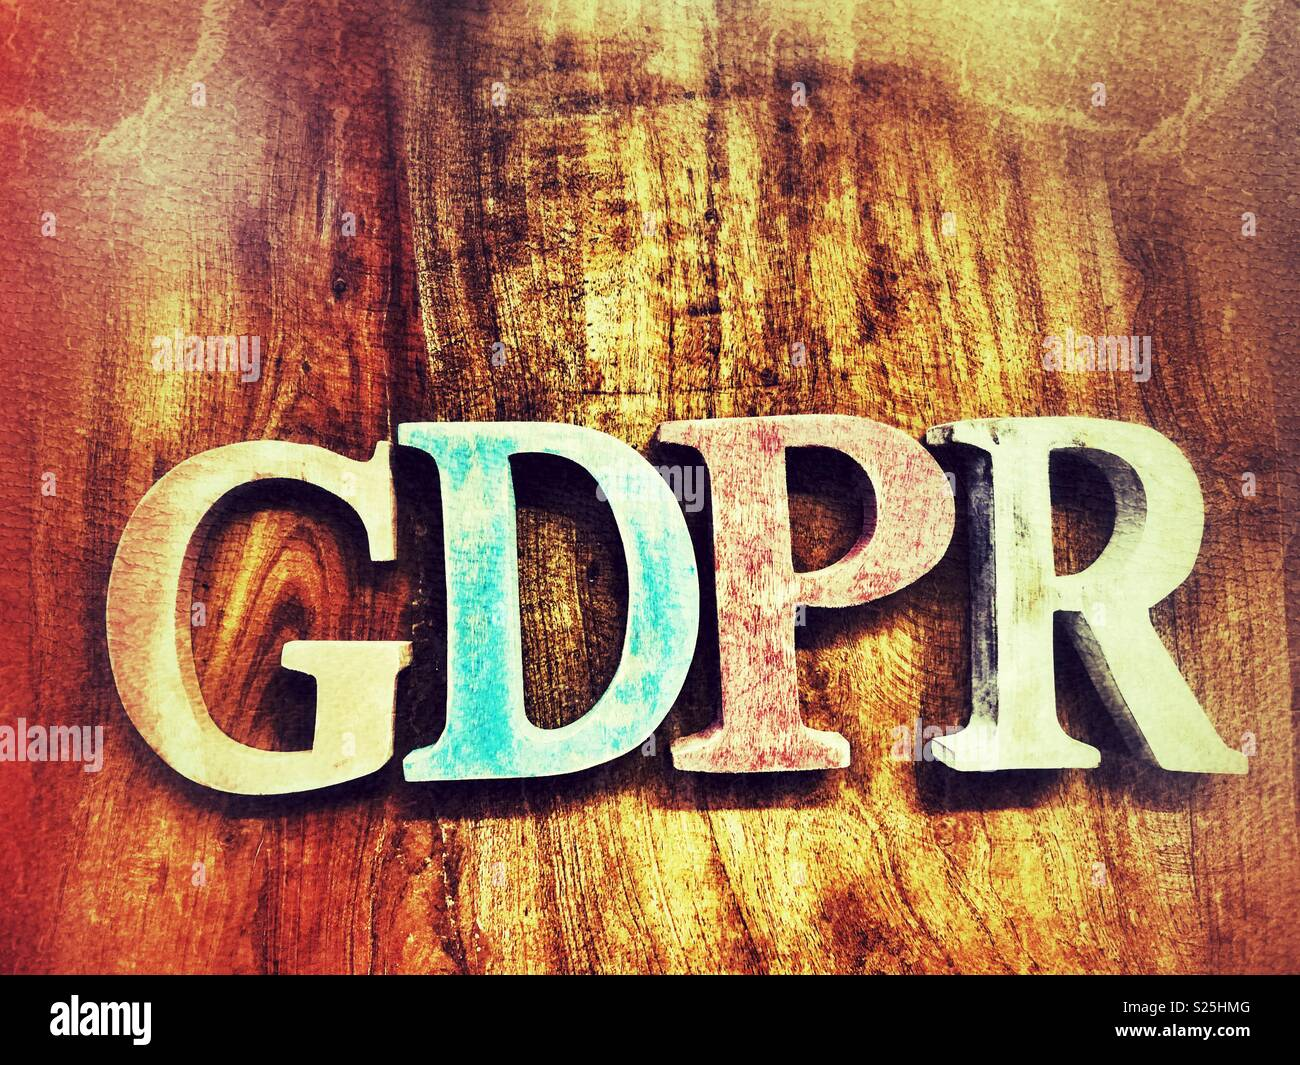 GDPR spelt out in lettering - Stock Image